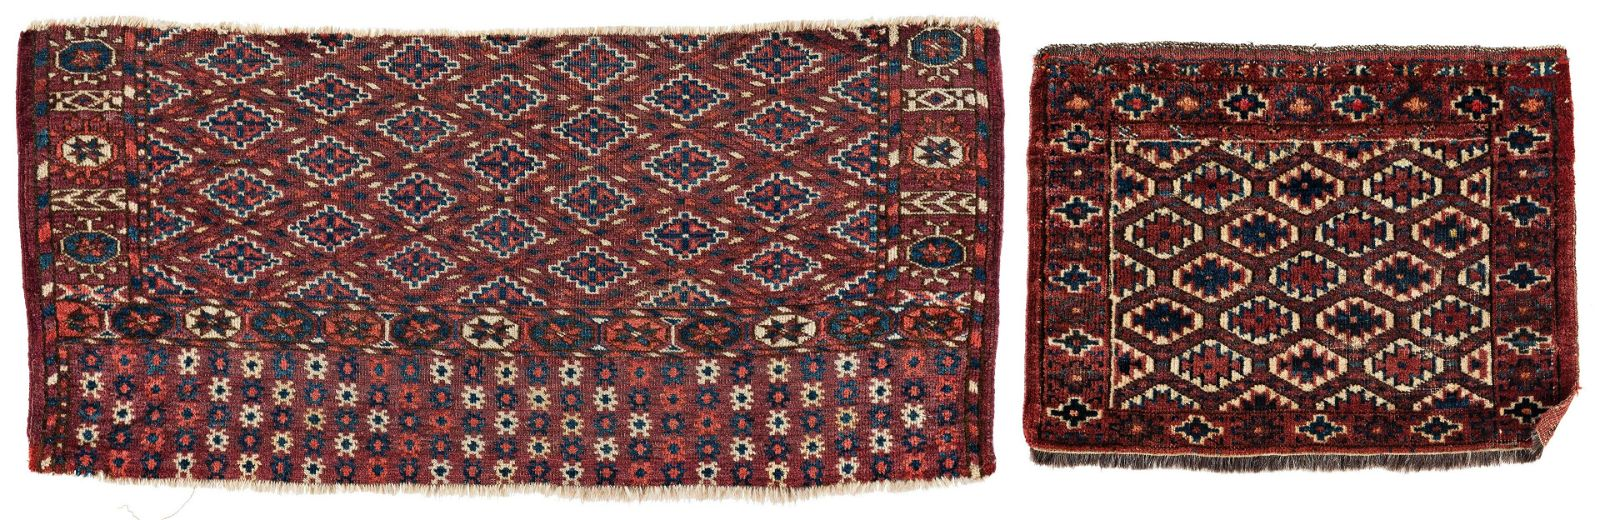 One Fragment of a Tekke Hearth Rug and one Yomut Bag